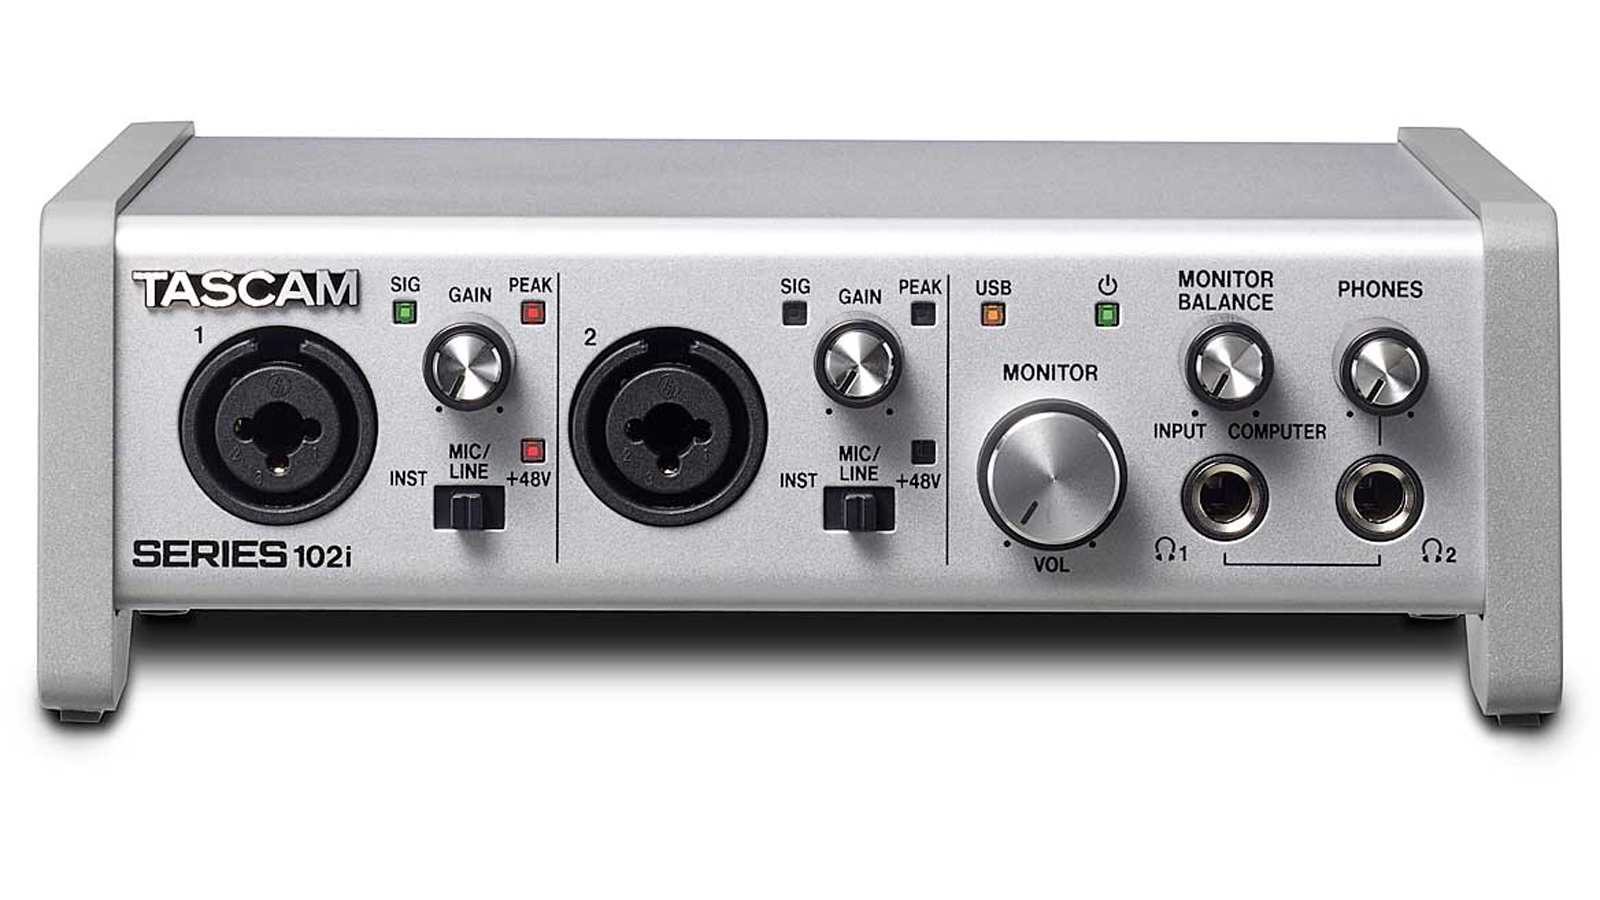 Tascam SERIES 102i USB Interface Audio/MIDI mit DSP-Mixer